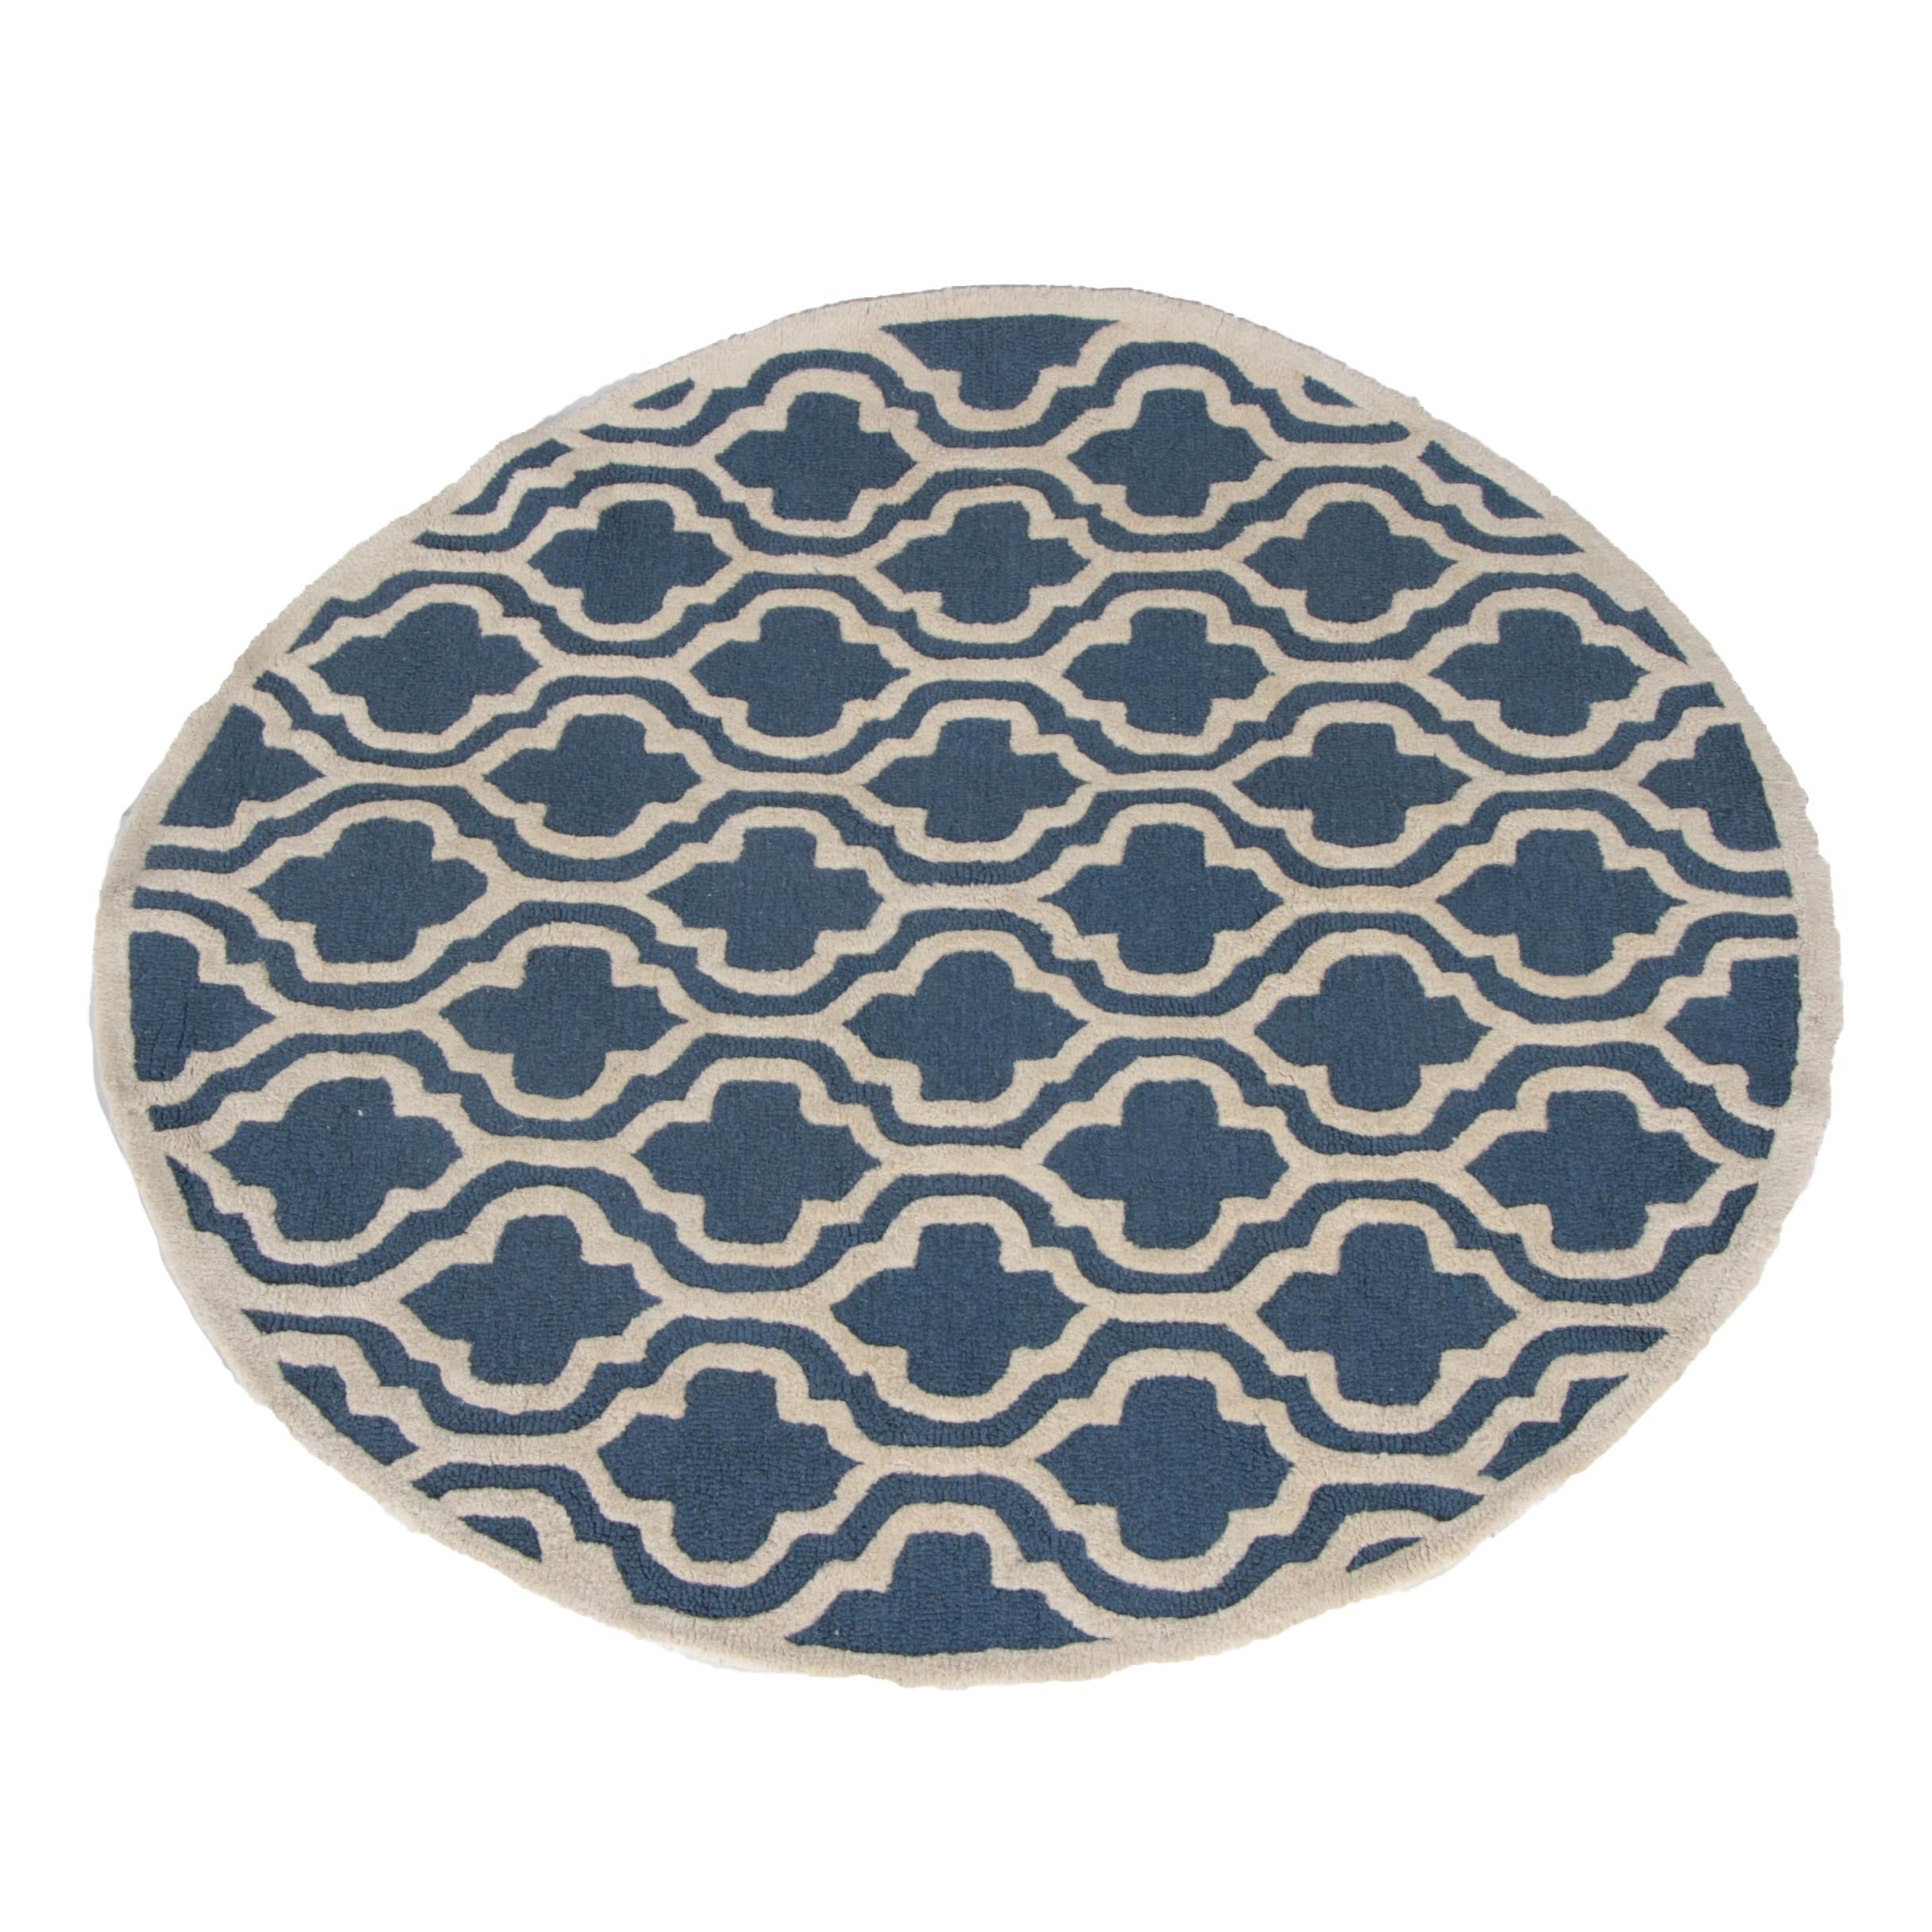 Hand Hooked Quatrefoil Round Wool Area Rug